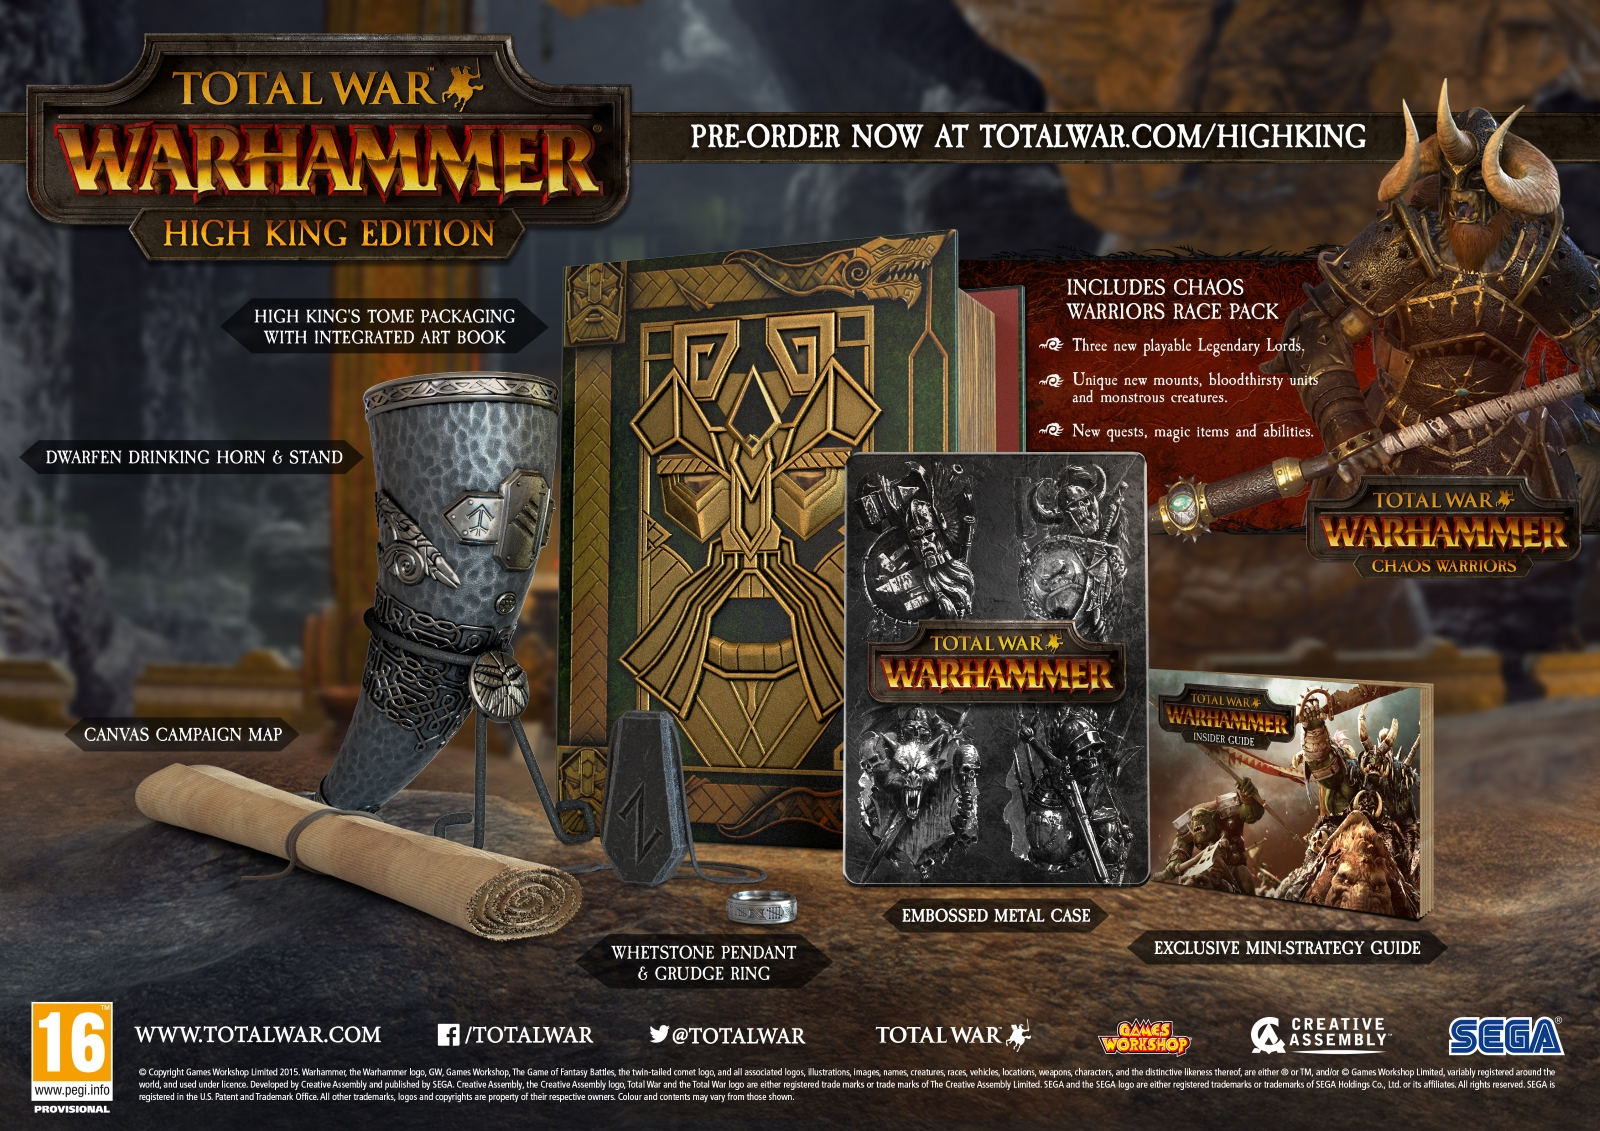 Total War: Warhammer Release Date, Pre-Order and High King Edition Revealed news header